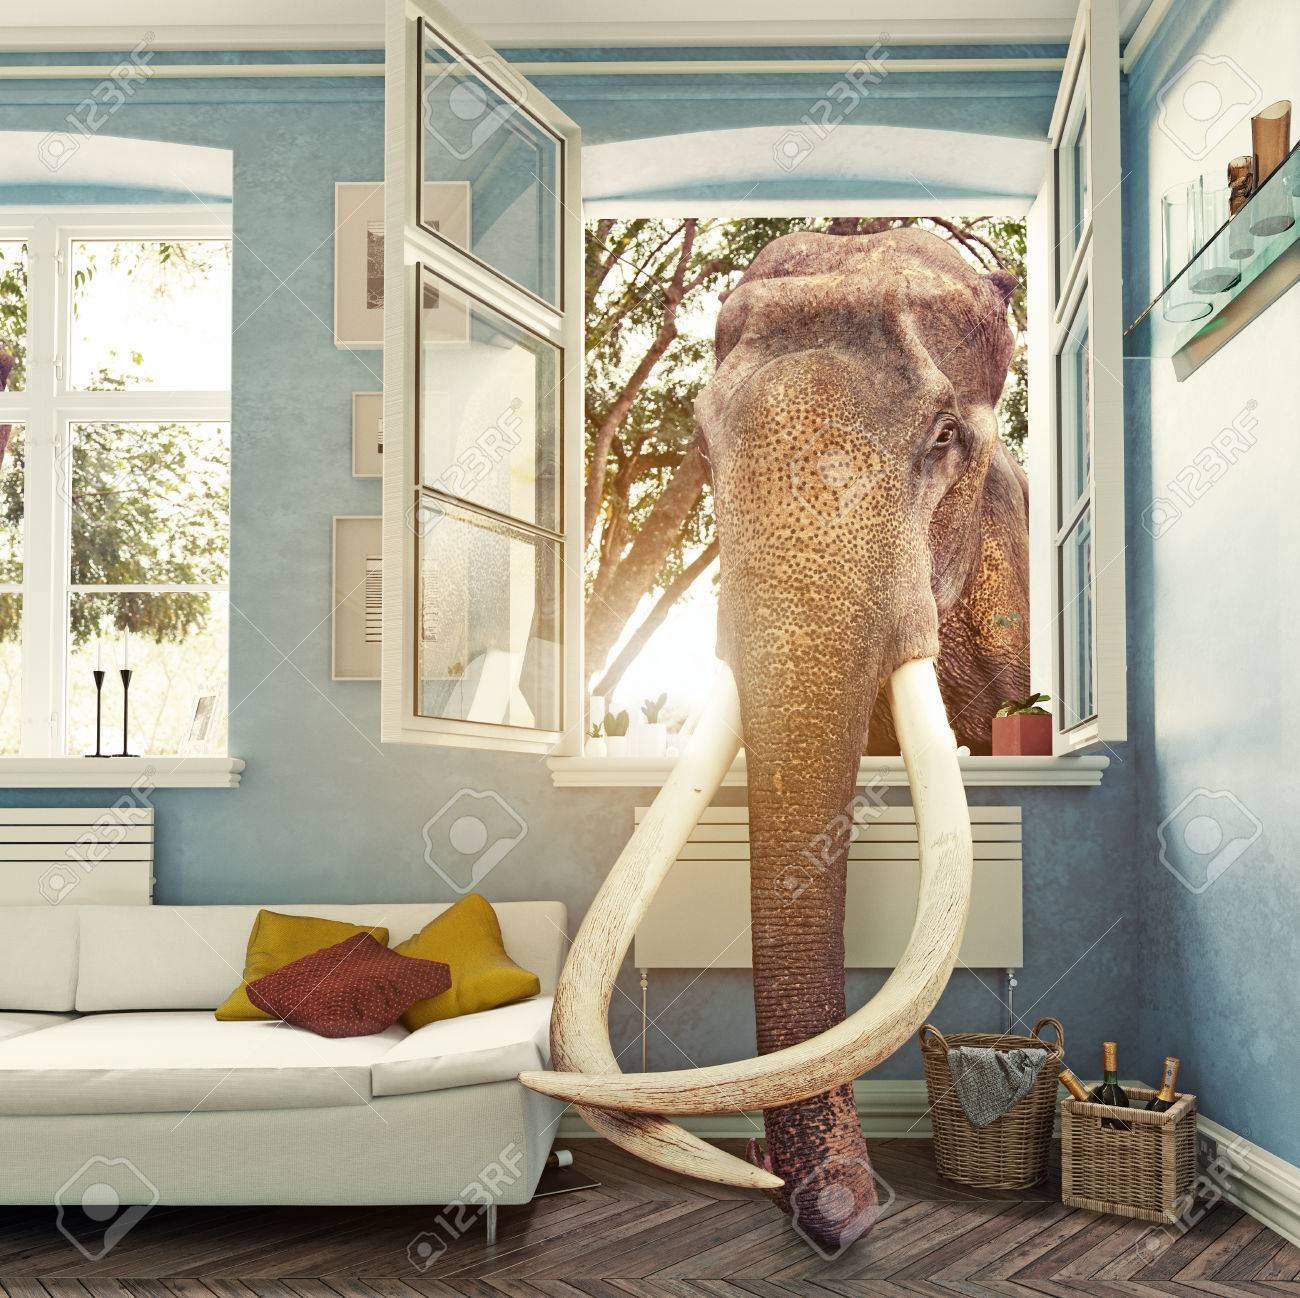 The elephant in the room window, Photo combination concept - 72435171